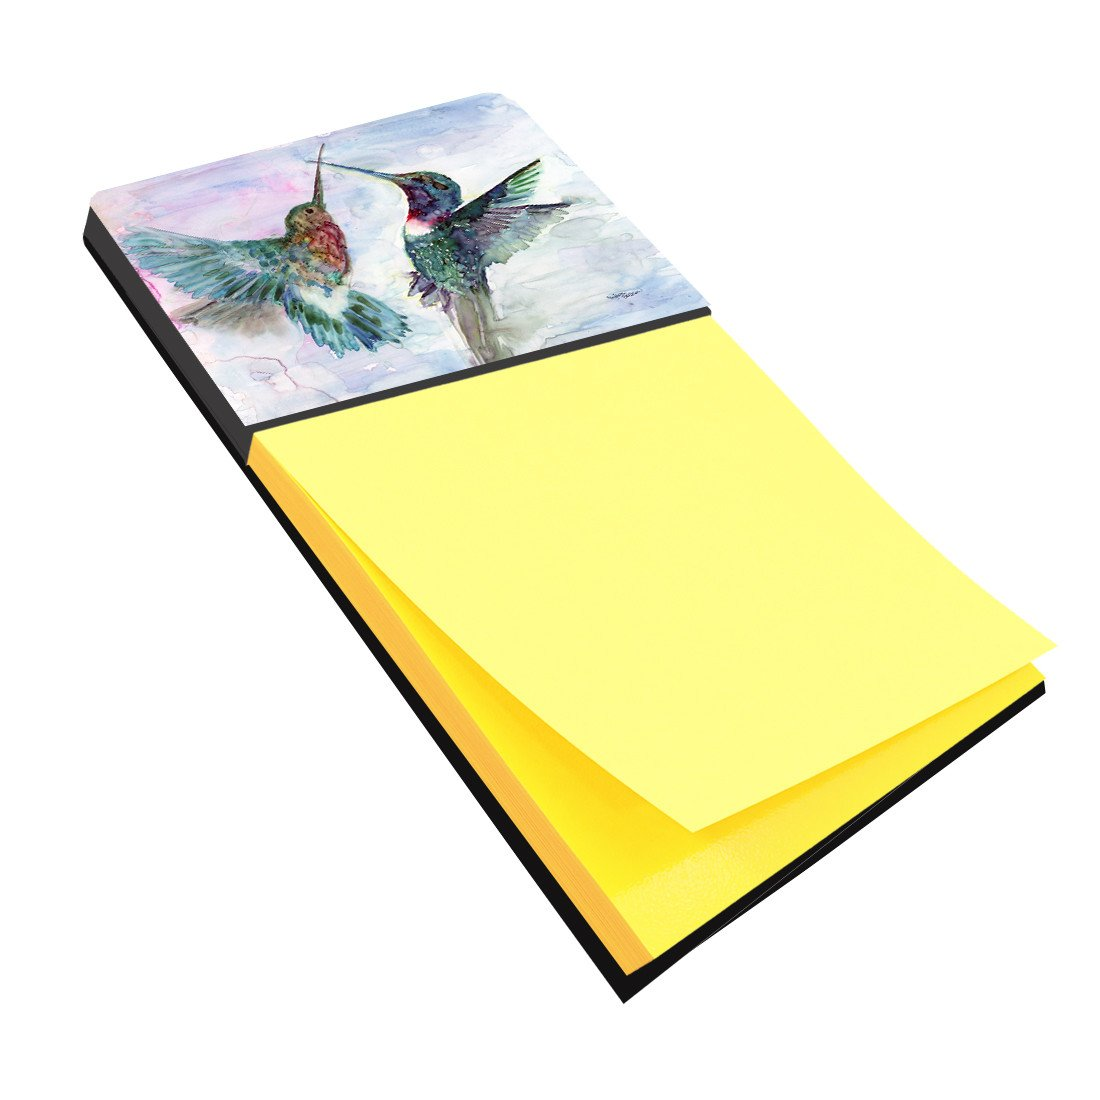 Hummingbird Combat Sticky Note Holder 8968SN by Caroline's Treasures